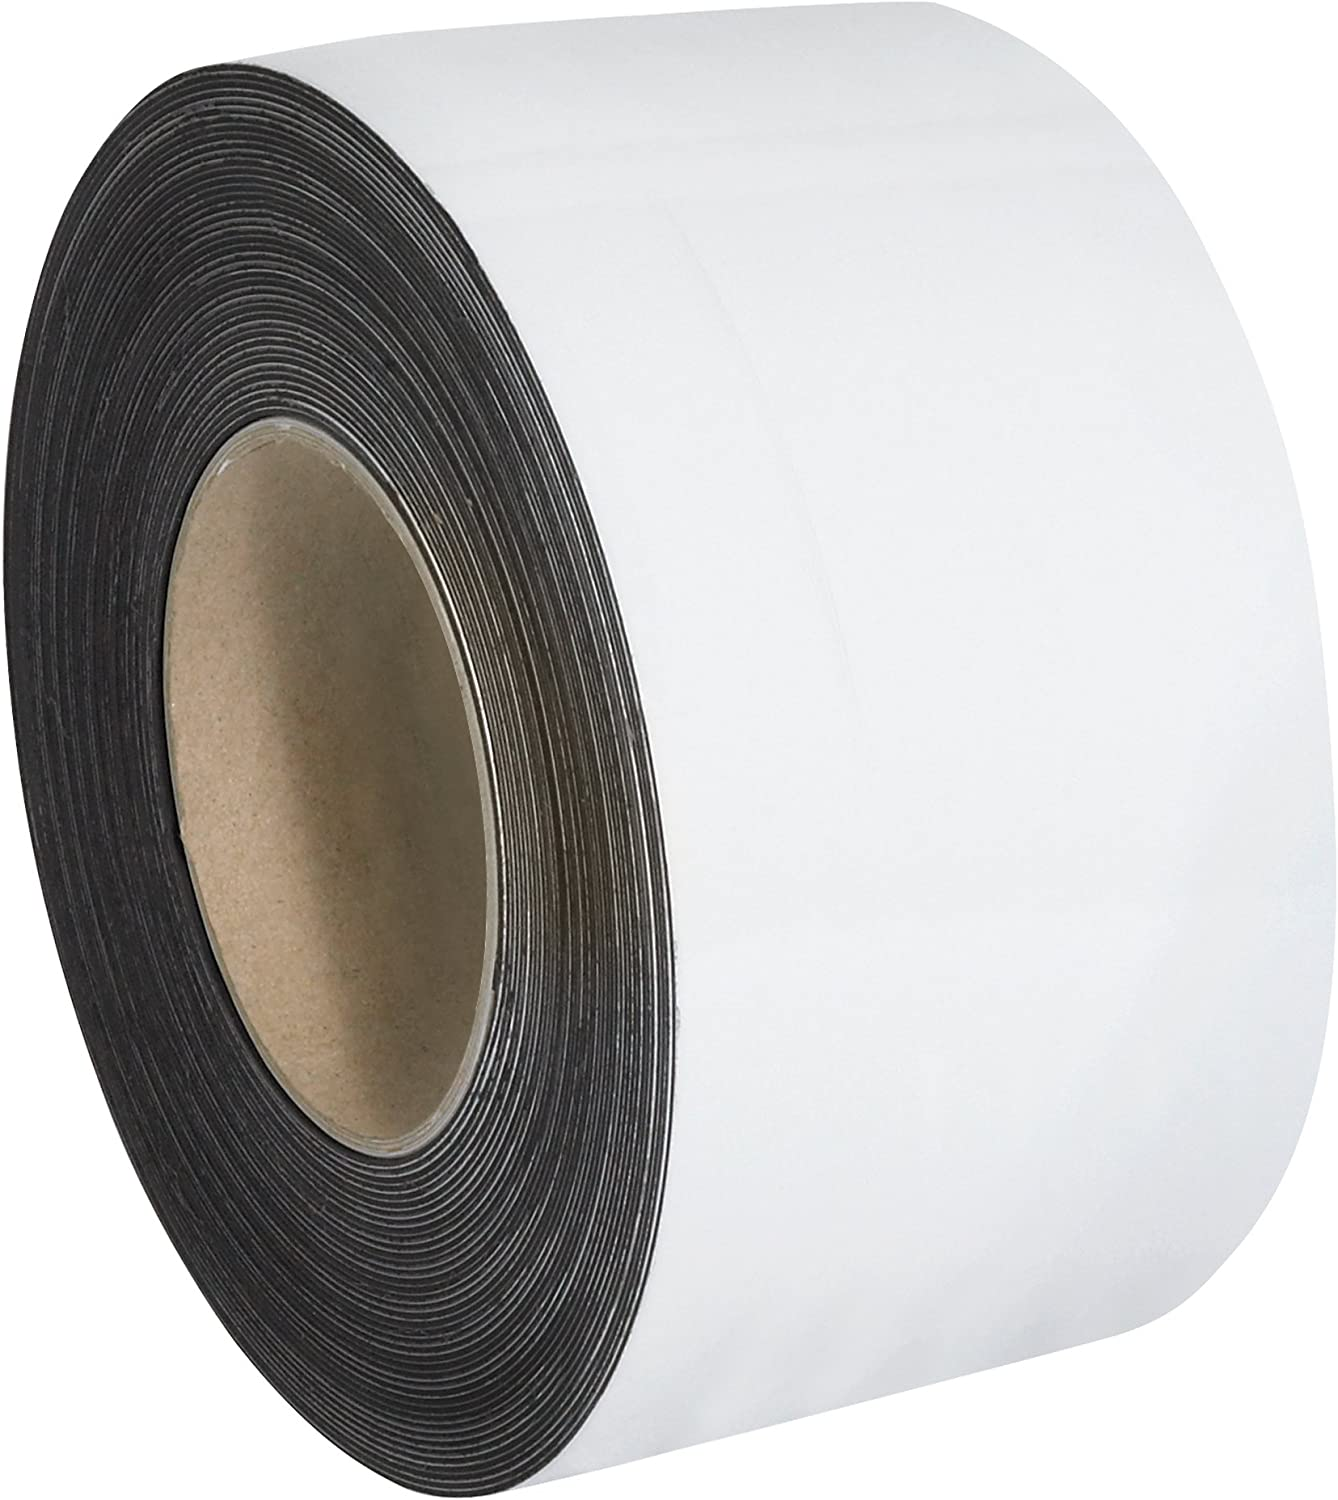 Poly Bag Guy Warehouse Max 44% OFF Labels Magnetic x 100' Rolls 3